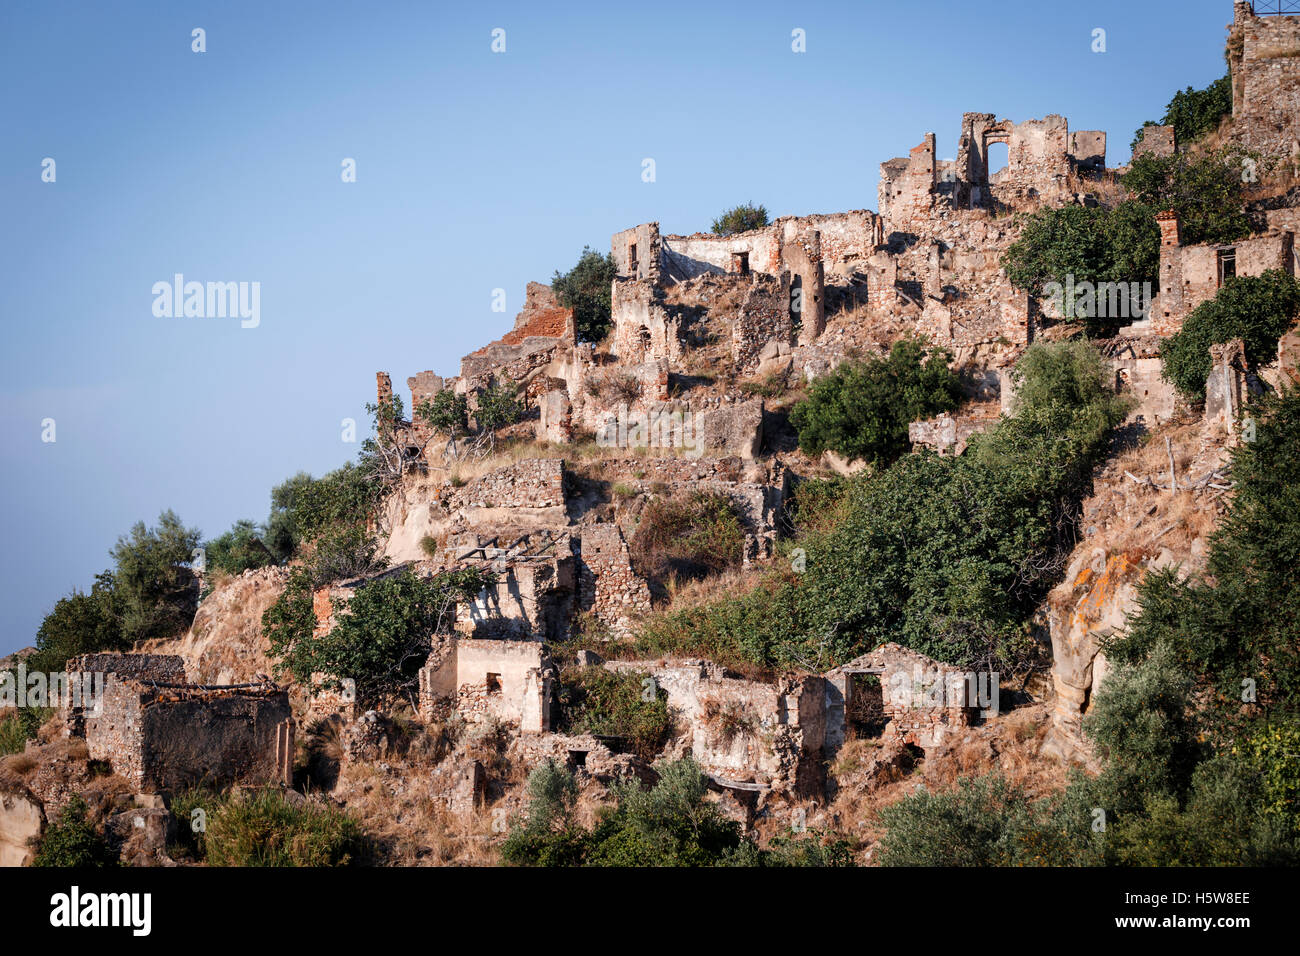 The ghost town of Brancaleone Superiore, Brancaleone, Calabria, Italy. - Stock Image